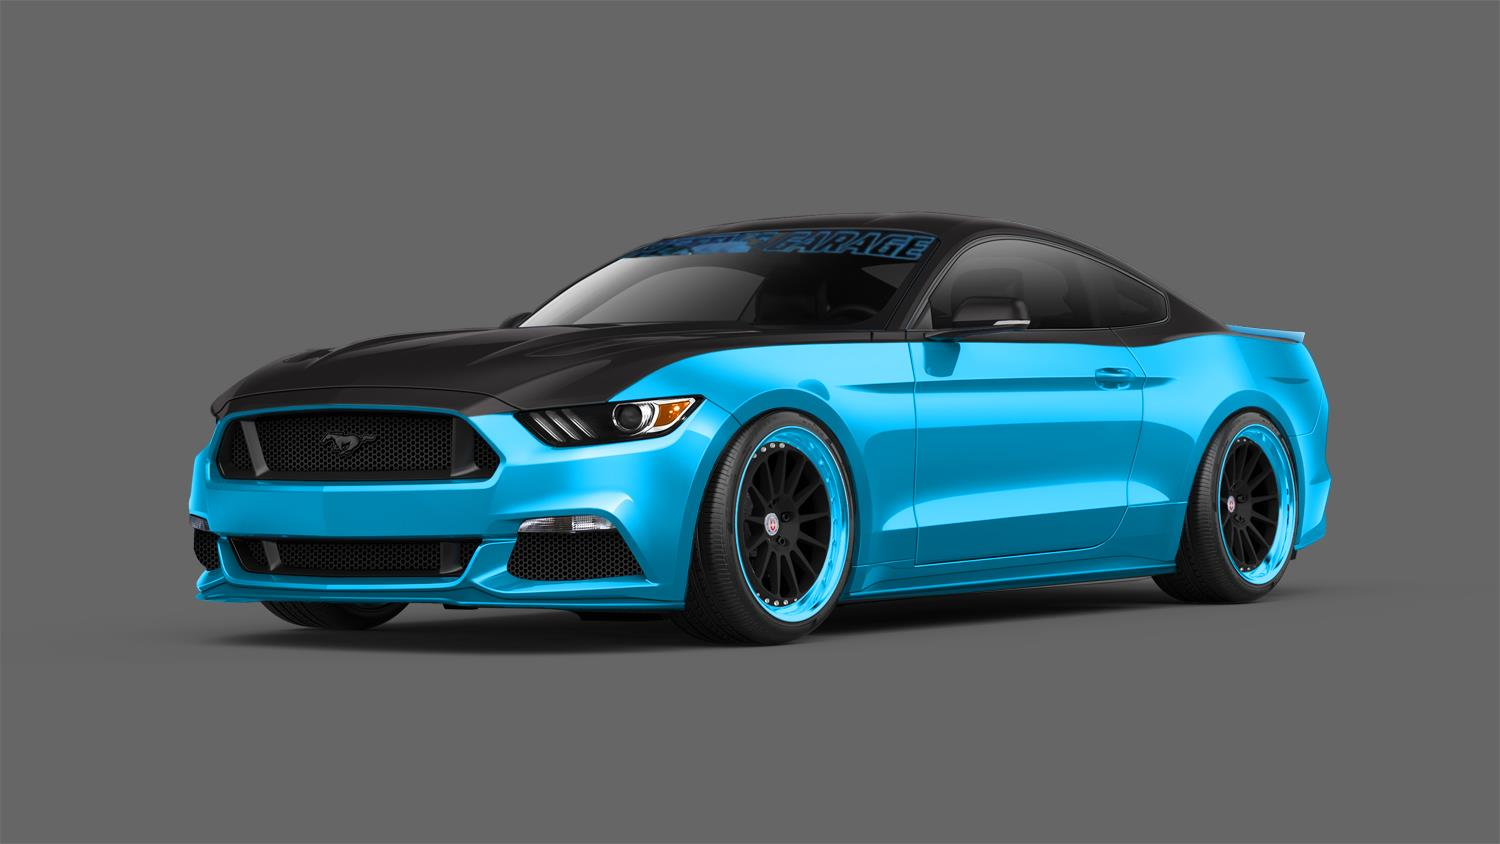 2015 ford pettys garage mustang for Garage ford villefranche